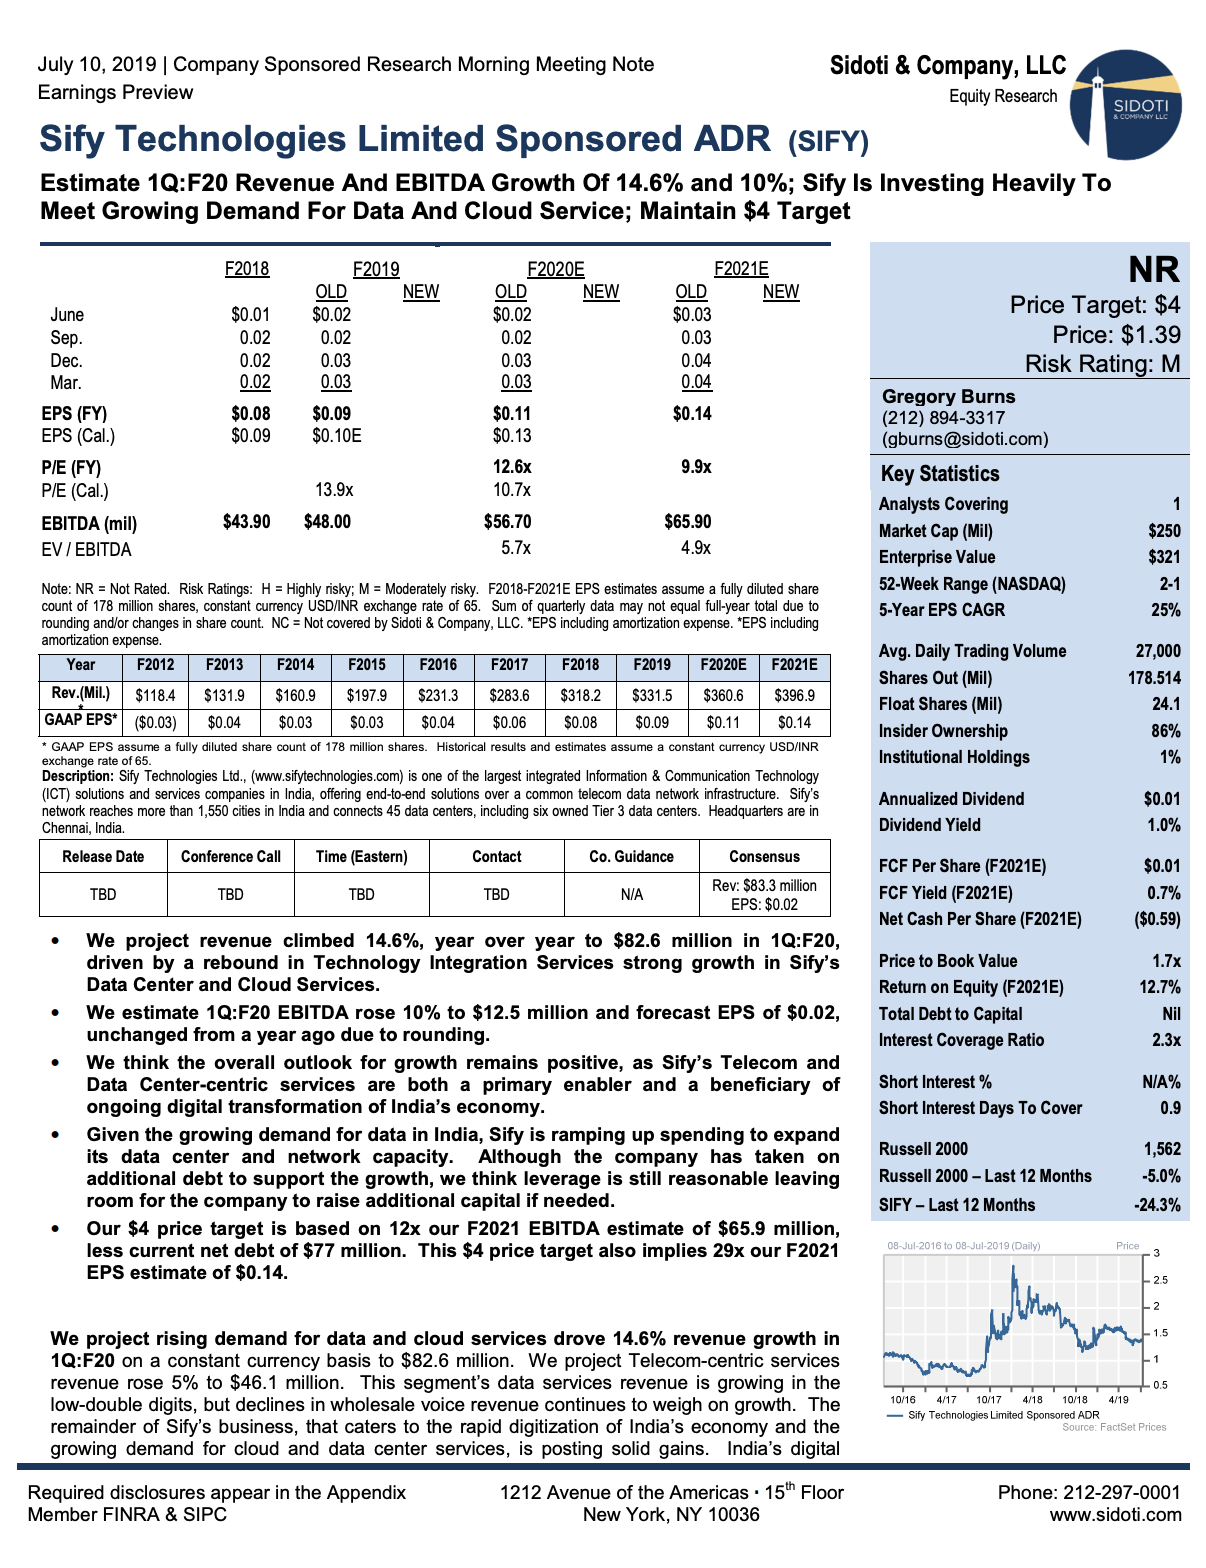 Earnings Preview: July 10, 2019